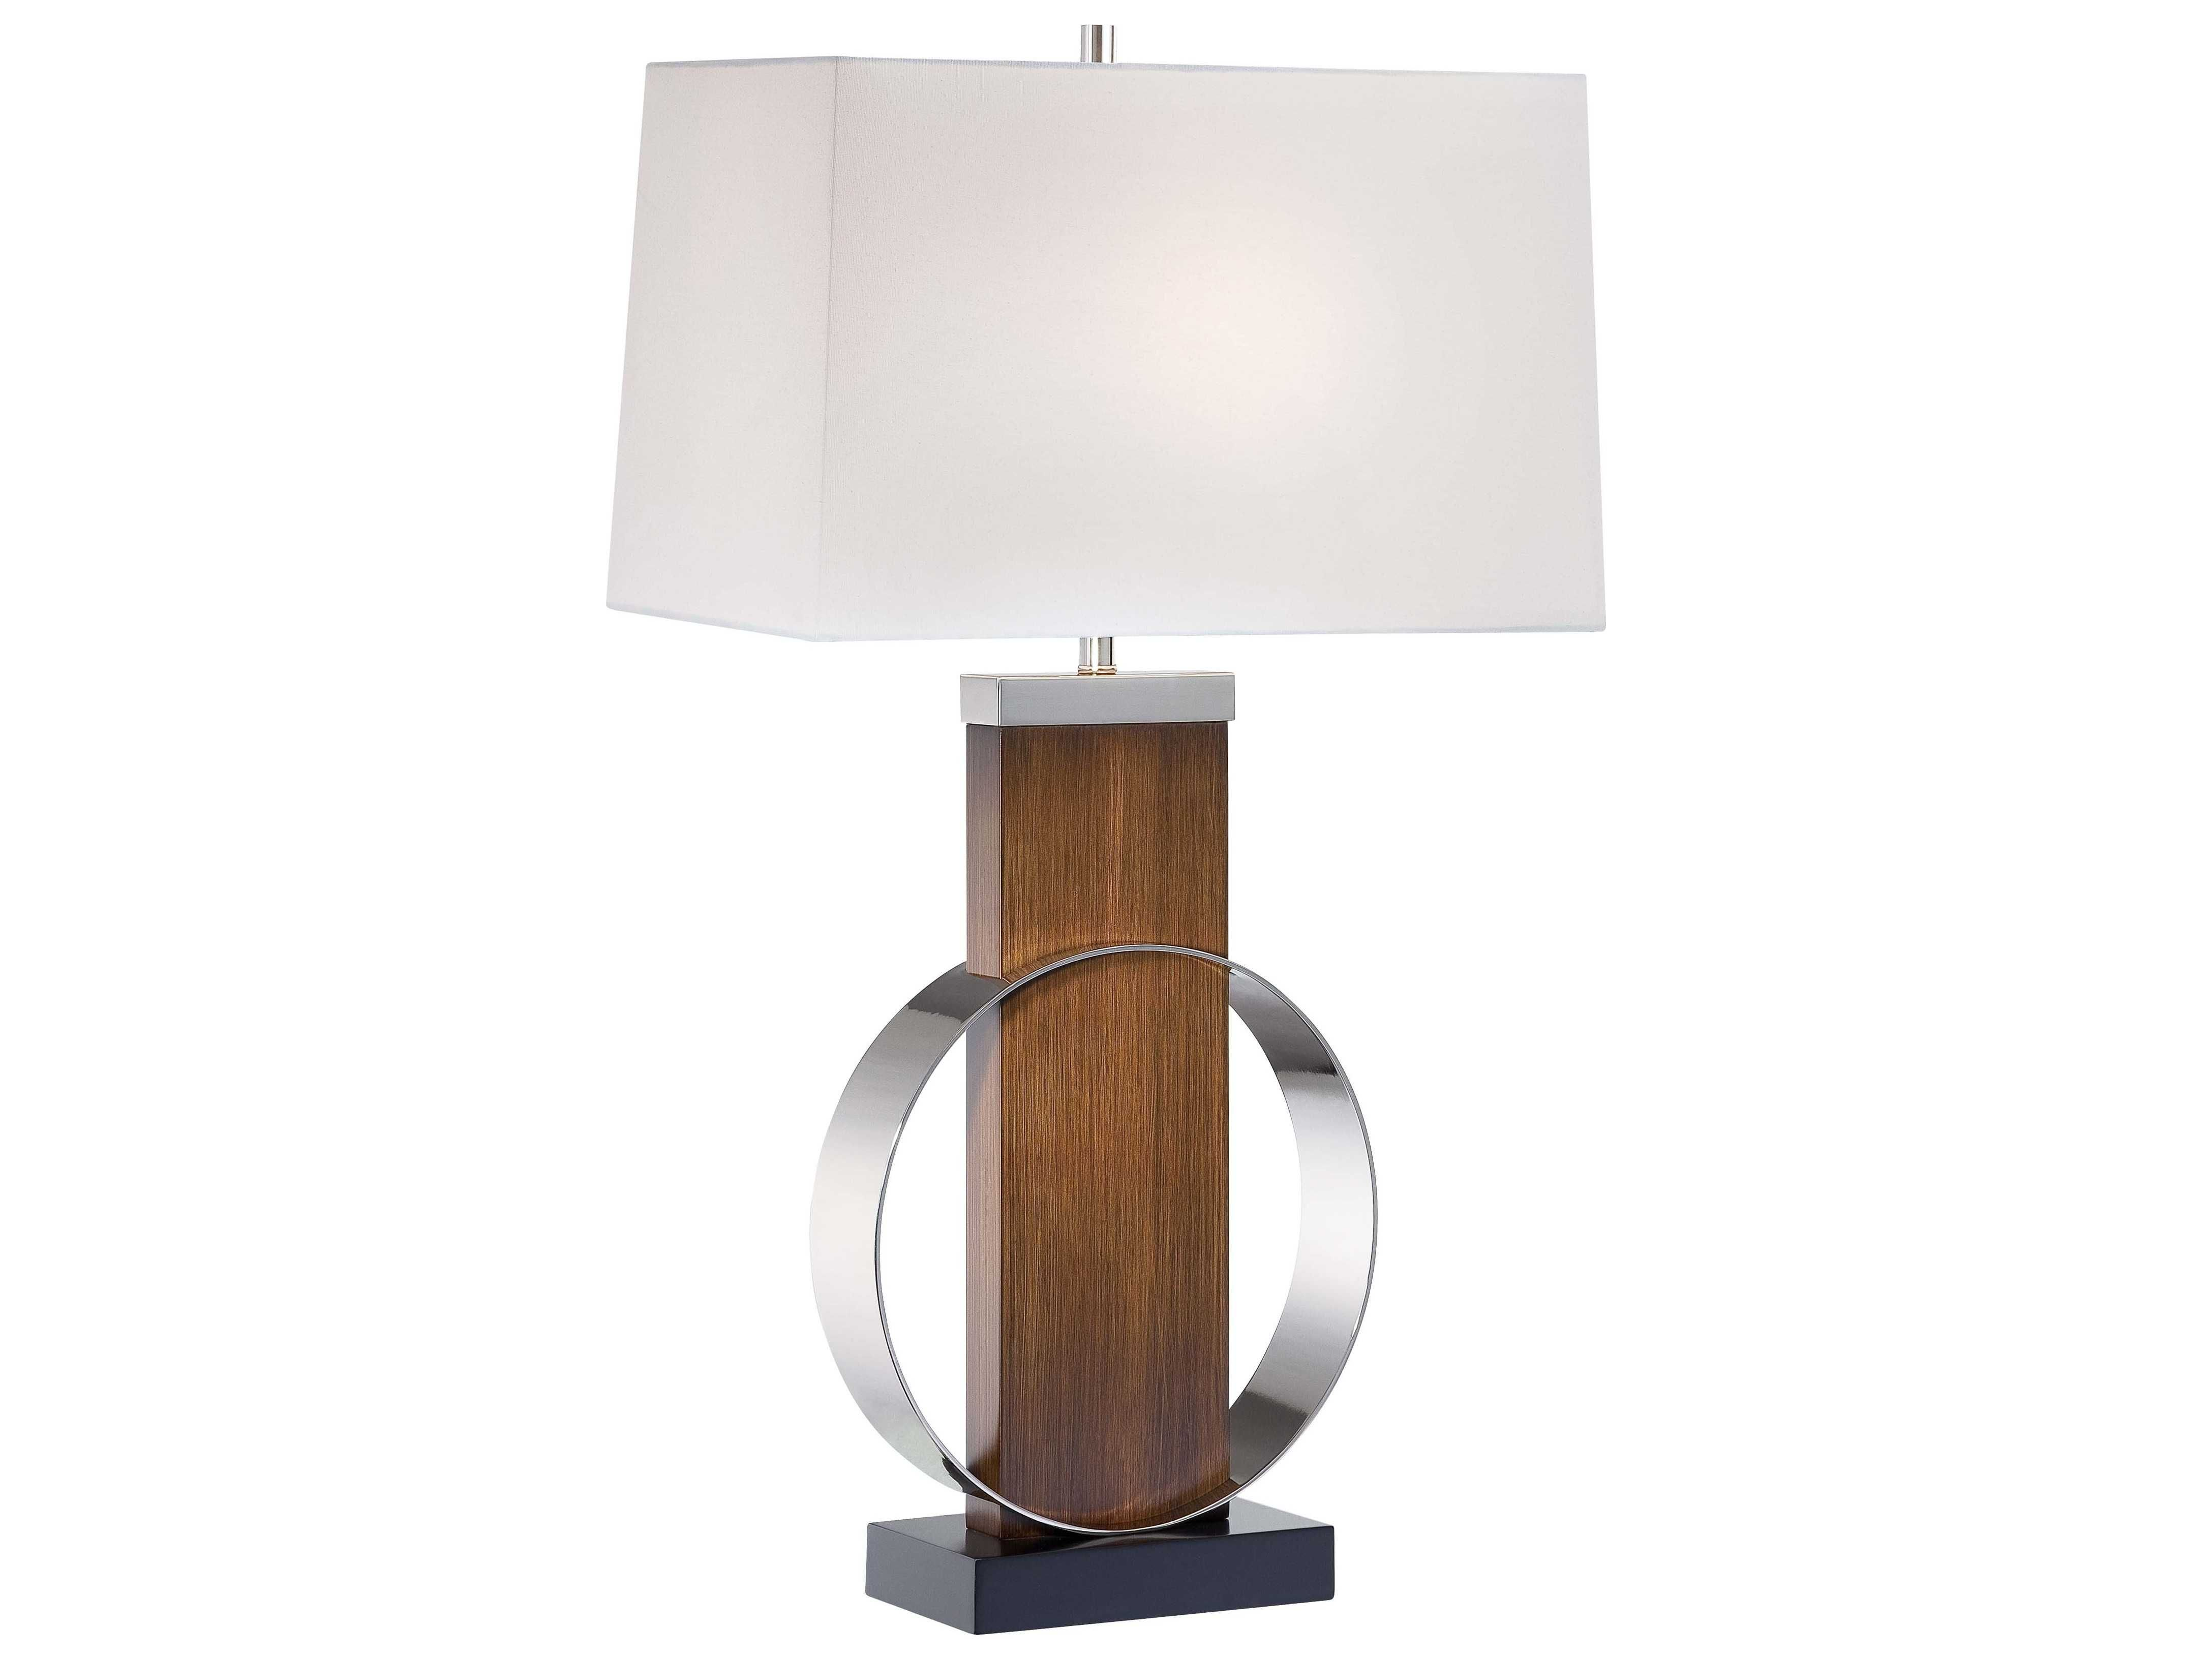 Minka lavery dark walnut black wood polished nickel black metal ambience am 10031 1 light height table lamp with white linen shade dark walnut lamps table lamps mozeypictures Image collections